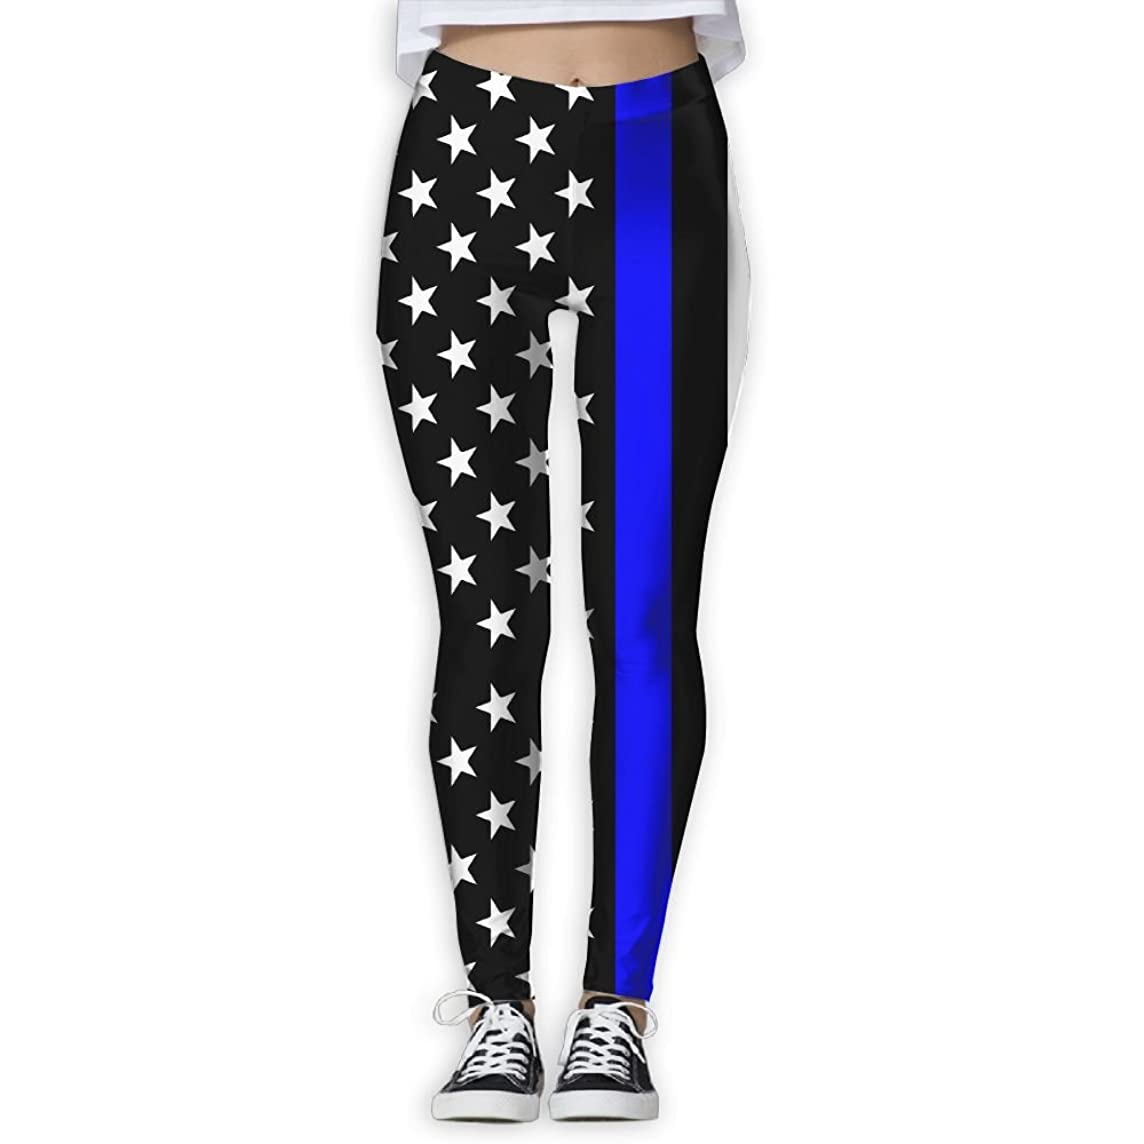 LanFong Women's Yoga Pants Blue Shark Squeen Power Flex Full Length Capris Leggings